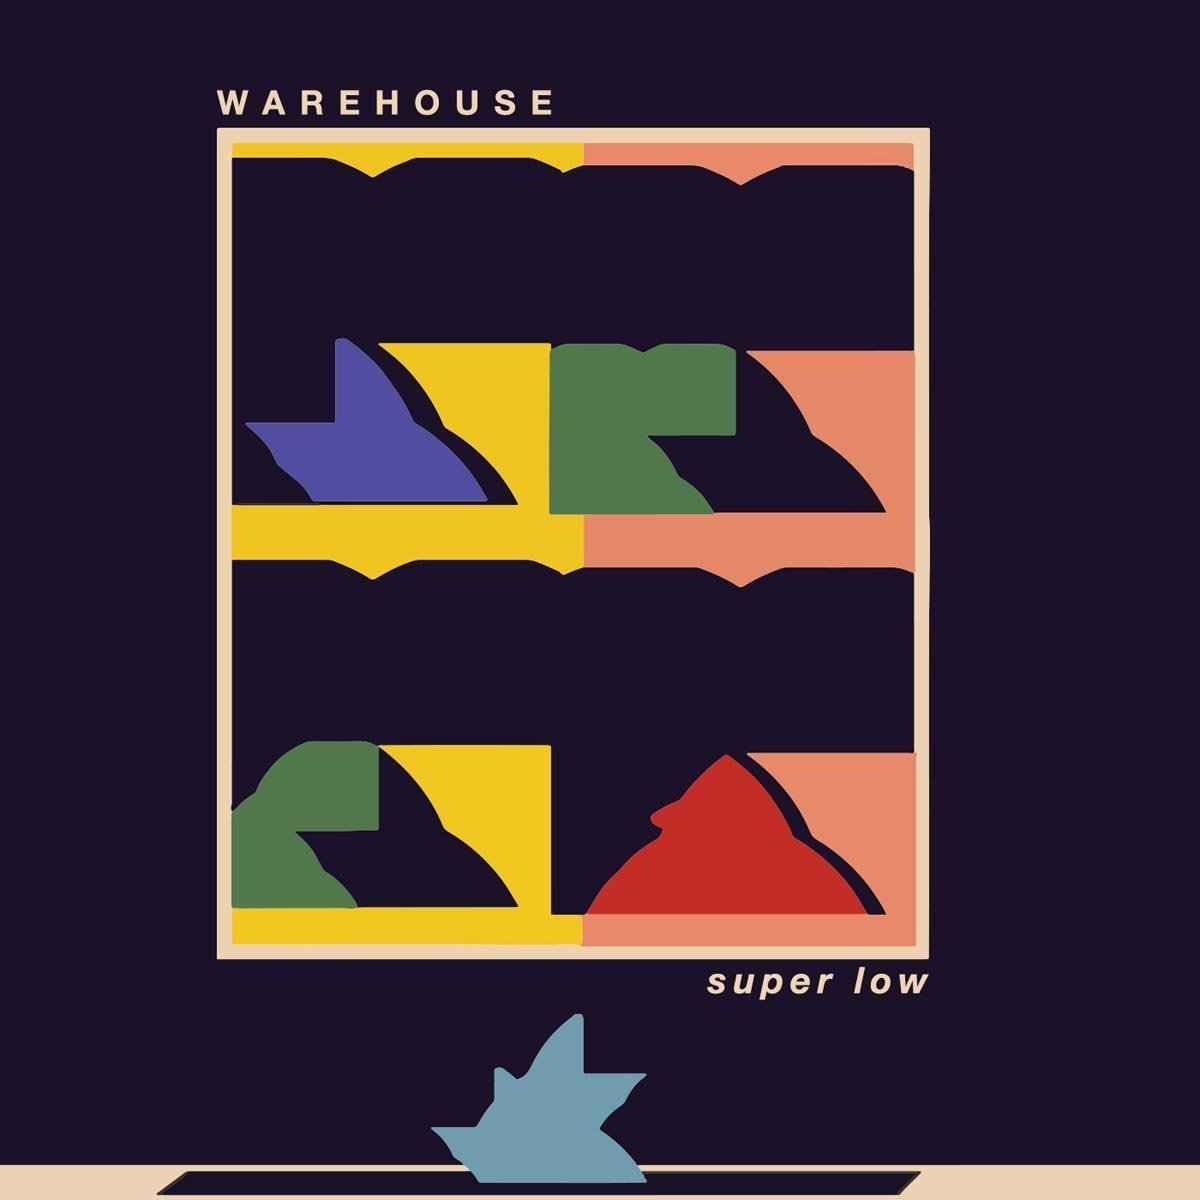 warehouse-super-low